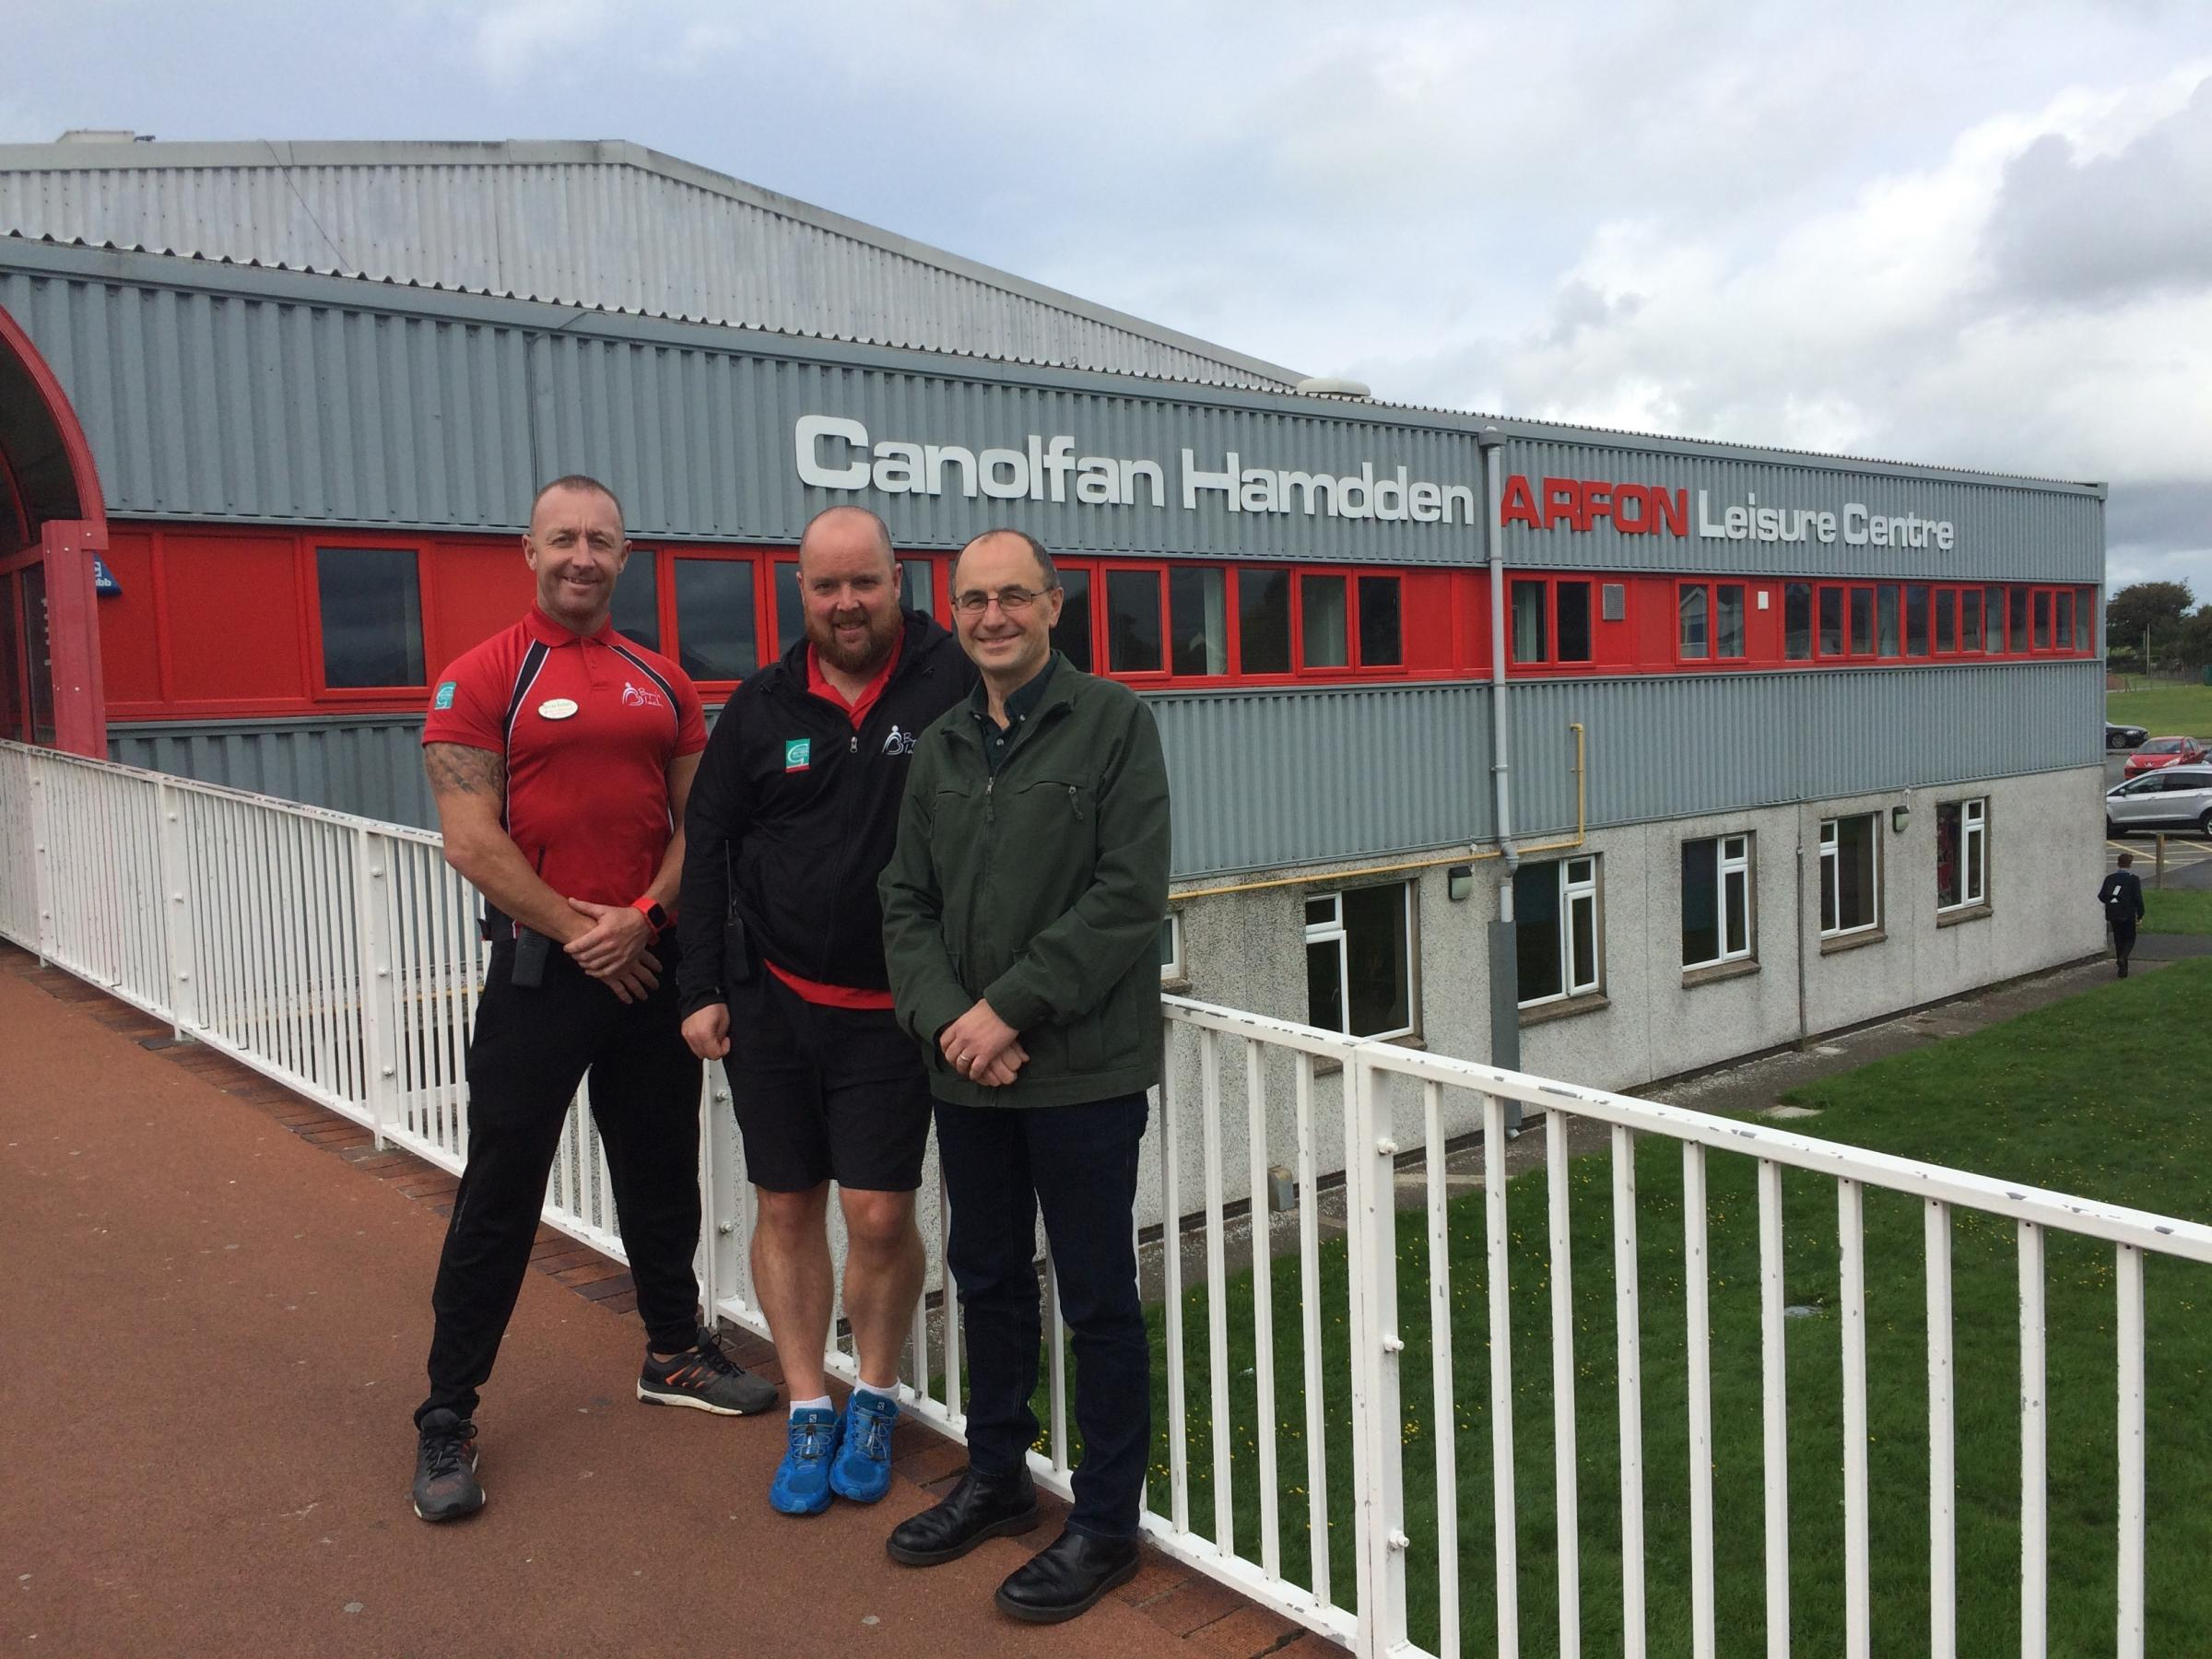 Photograph: Councillor Dafydd Meurig (right), Cabinet Member for the Environment, with Energy Champions Darren Anthony and Neil Owen outside Arfon Leisure Centre